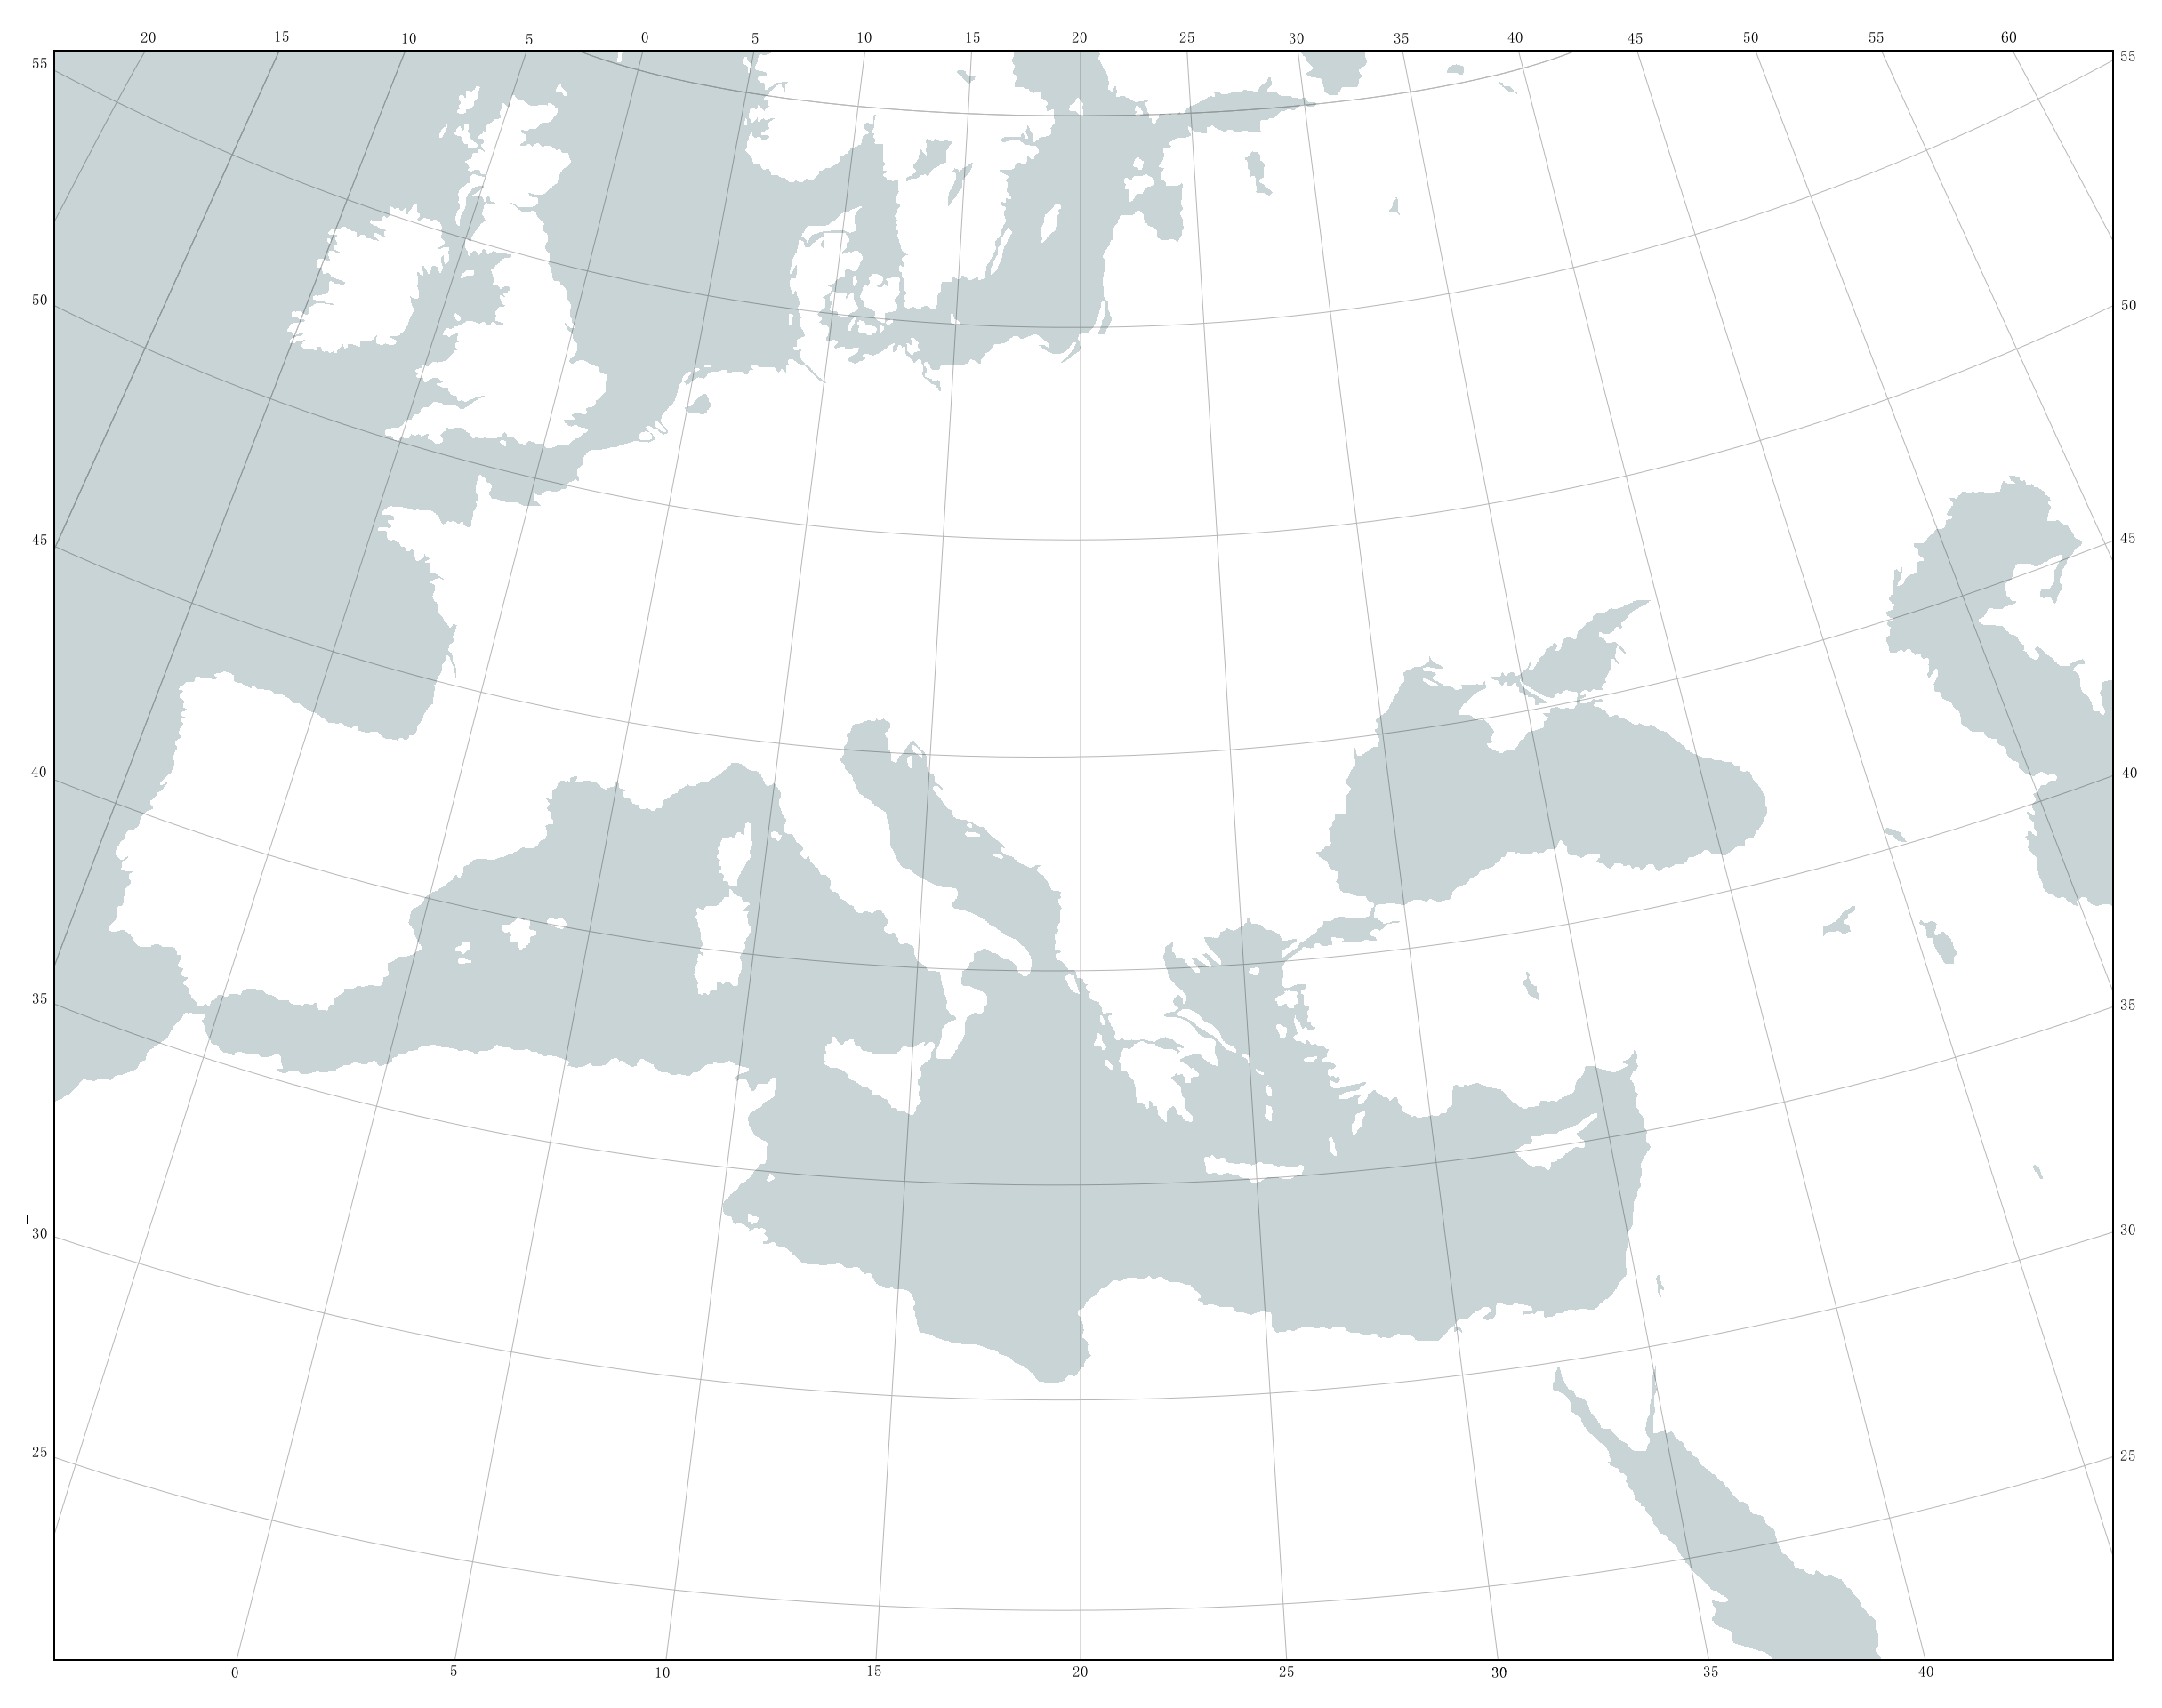 Blank Map Of Europe And North Africa Blank Map of Europe and North Africa (clean) by Kuusinen on DeviantArt